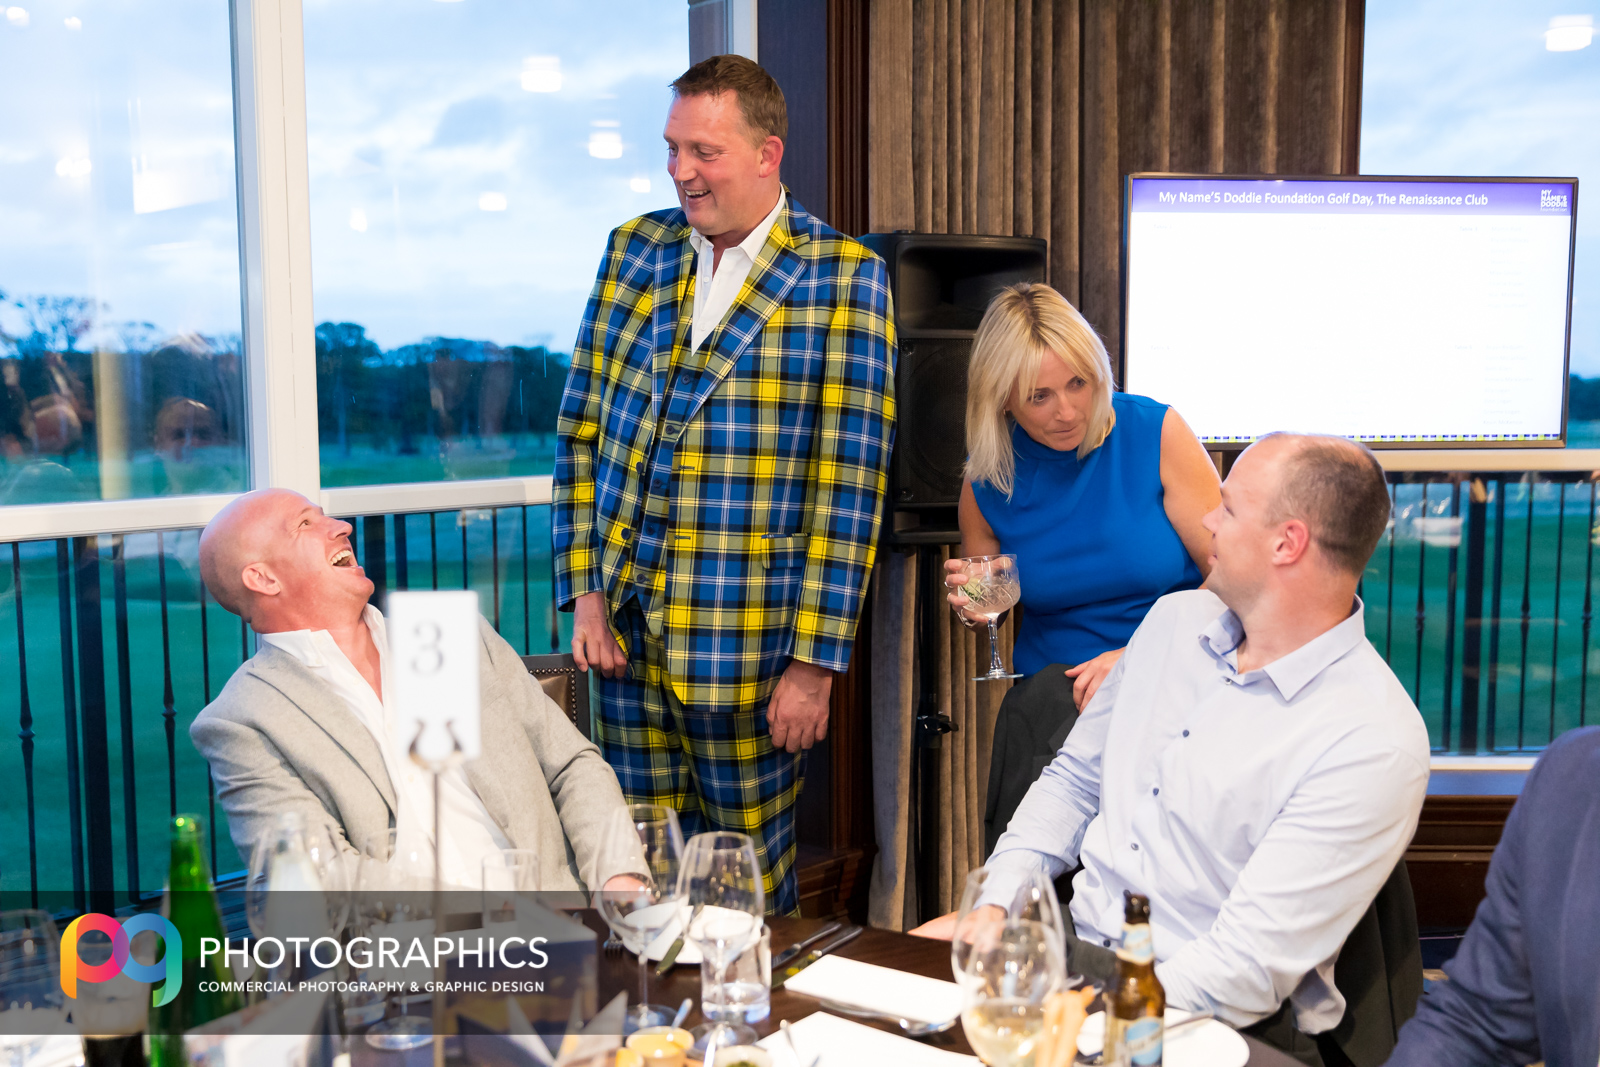 charity-golf-pr-event-photography-glasgow-edinburgh-scotland-31.jpg